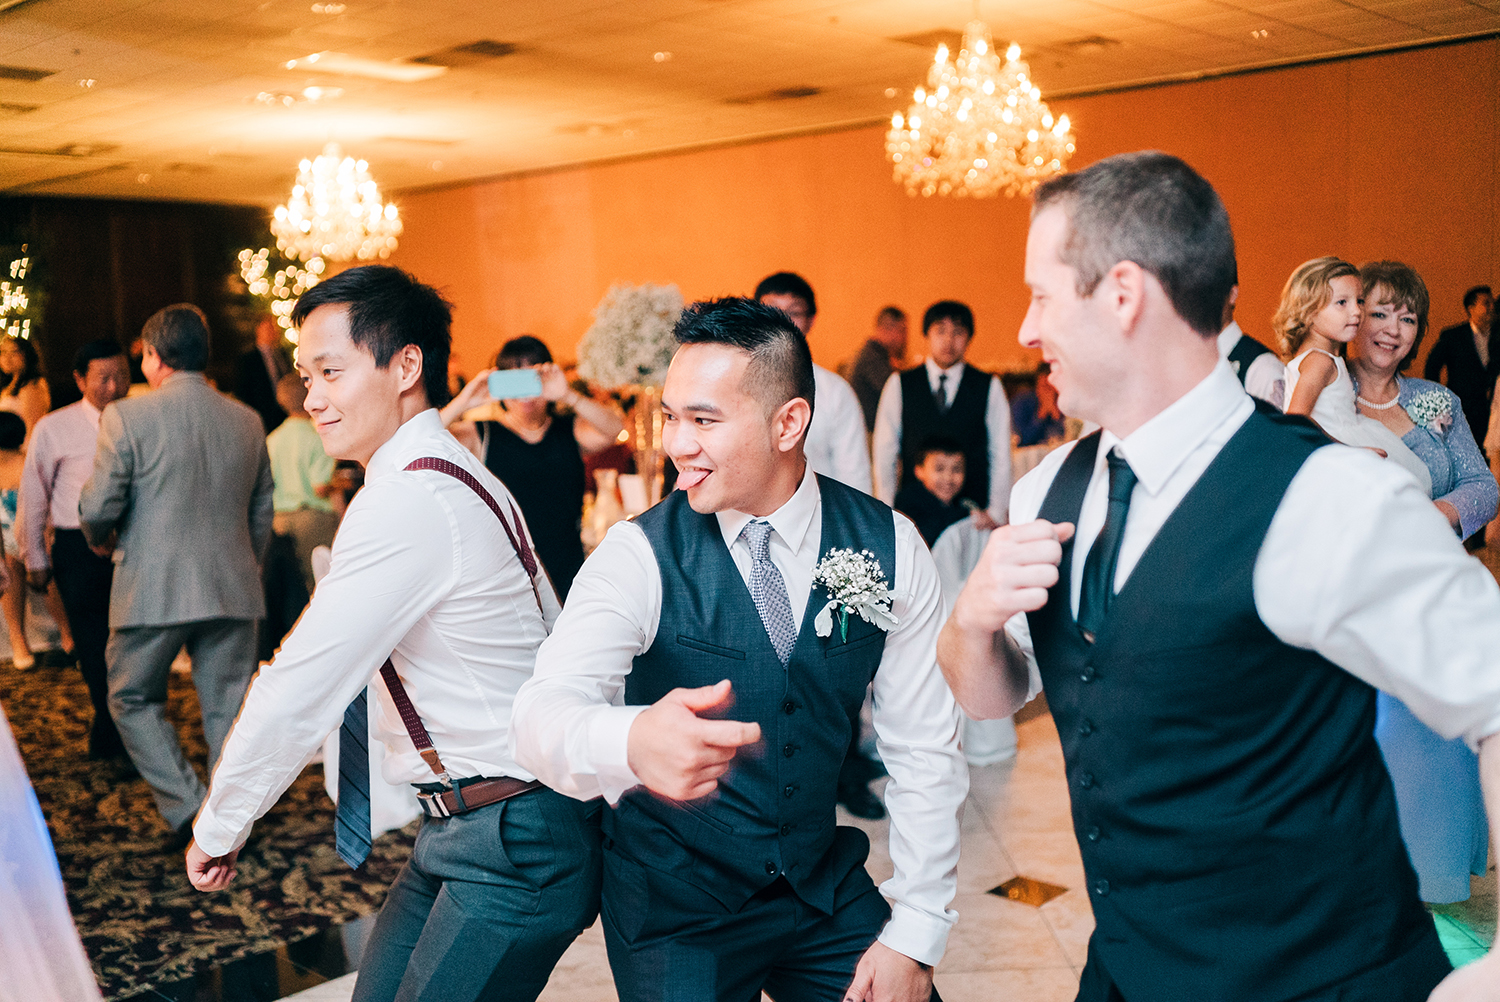 groom and groomsmen dancing at wedding reception